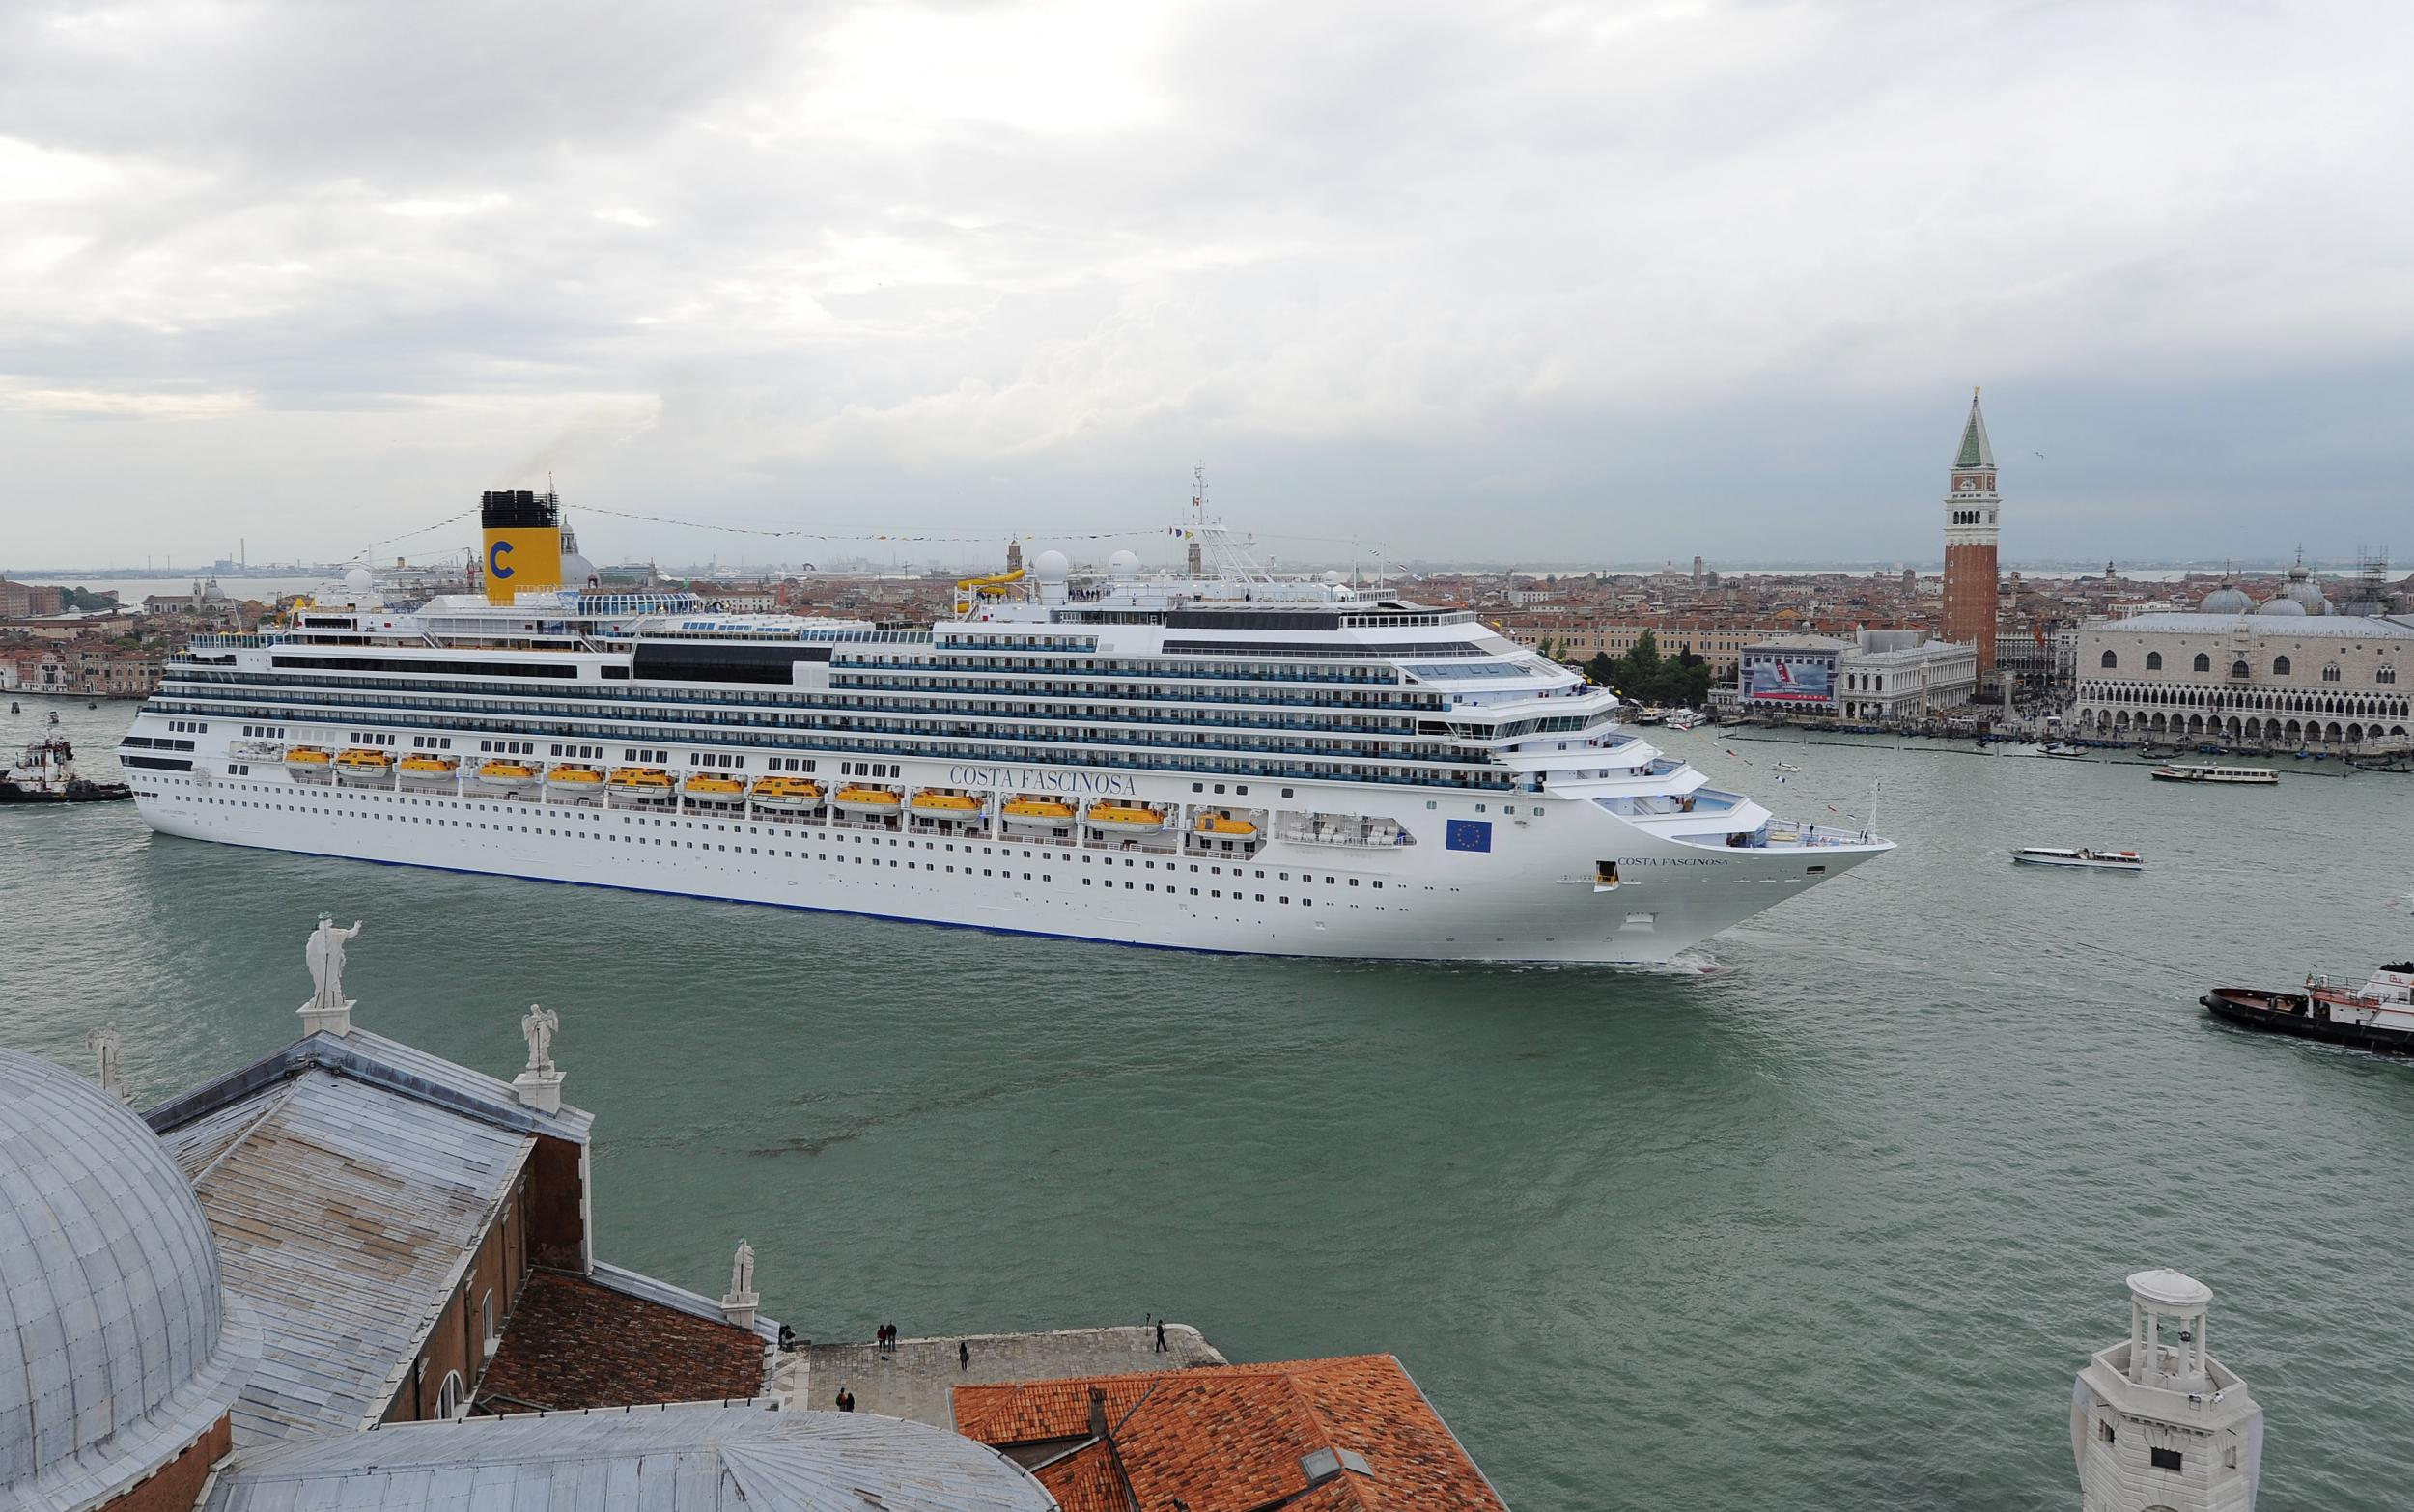 Italy bans huge cruise ships from Venice city centre